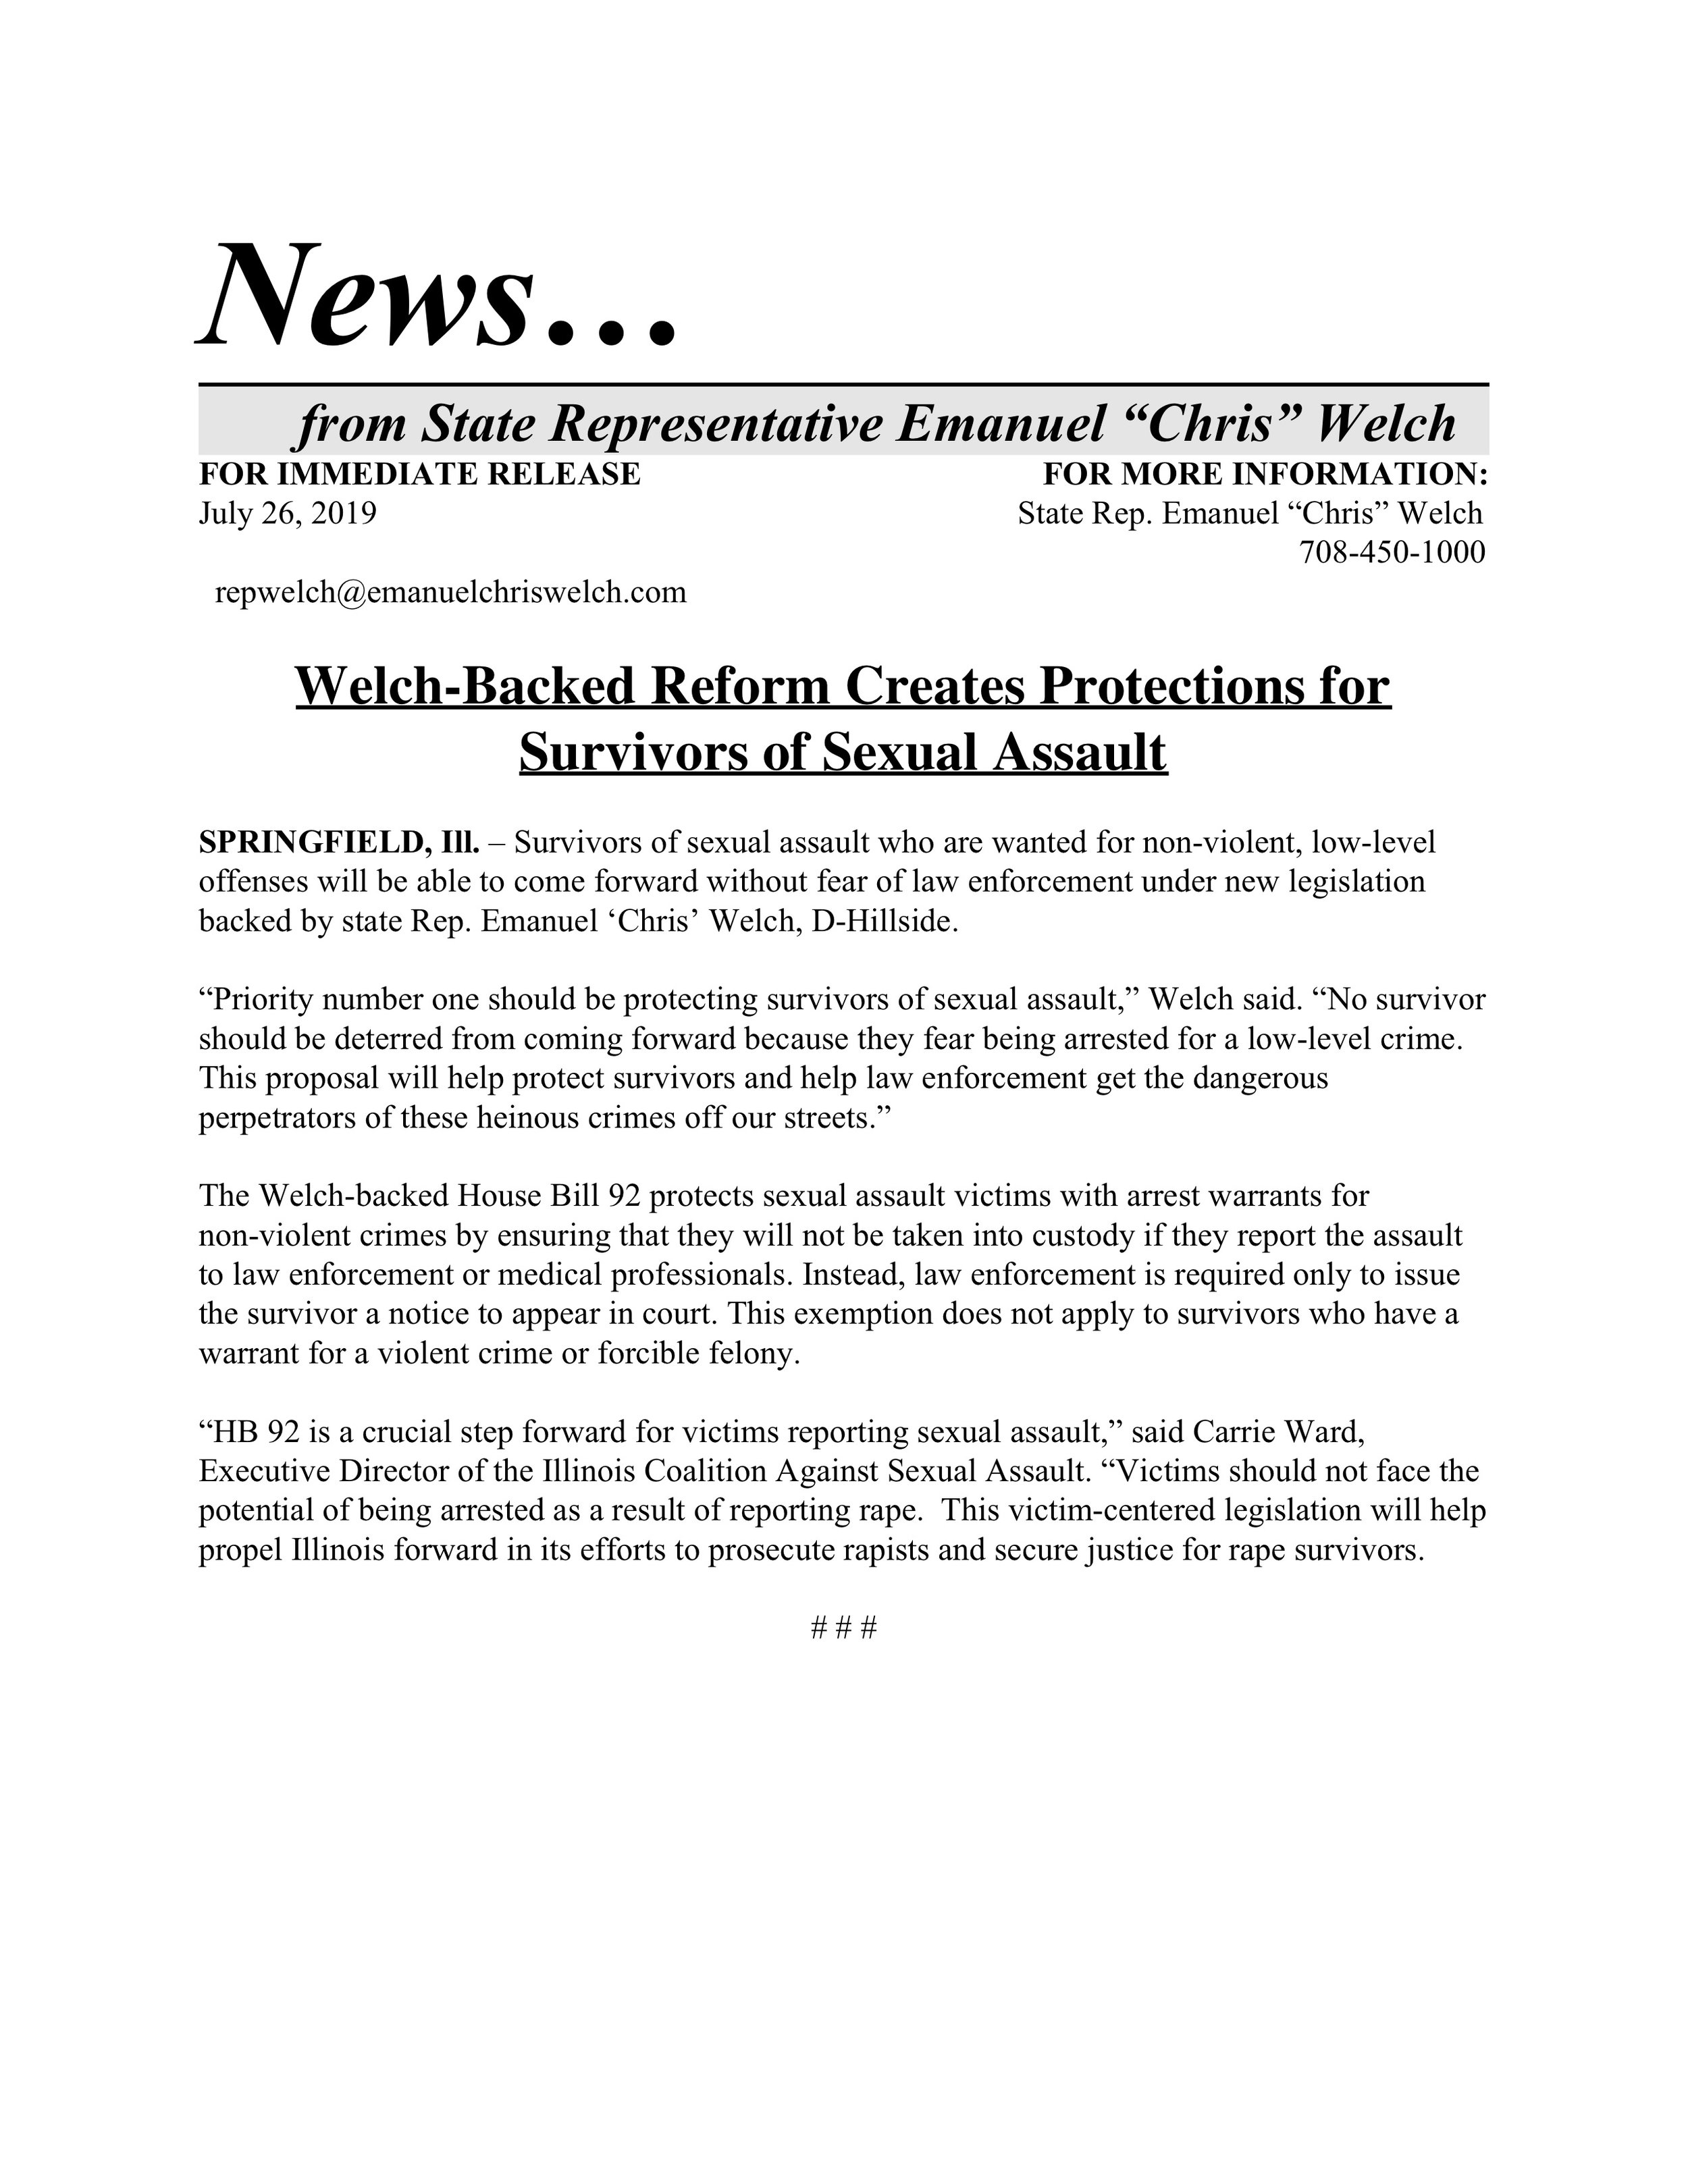 Welch-Backed Reform Creates Protections for Survivors of Sexual Assault  (July 26, 2019)